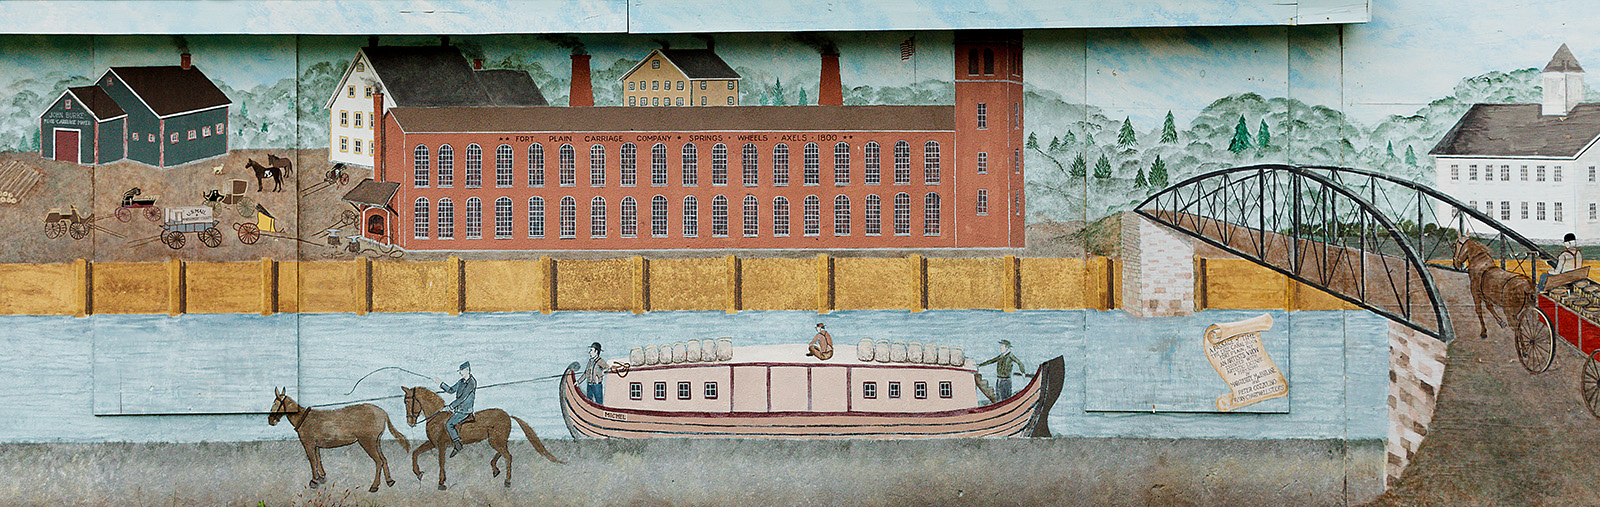 """""""Fort Plain on the Erie Canal"""", (detail), Cozzolino and MacFarlane, Chartwell Studios, Sharon Springs, NY, courtesy of R. Hancock, Spring and Axle Works building, Willett Street, Fort Plain"""